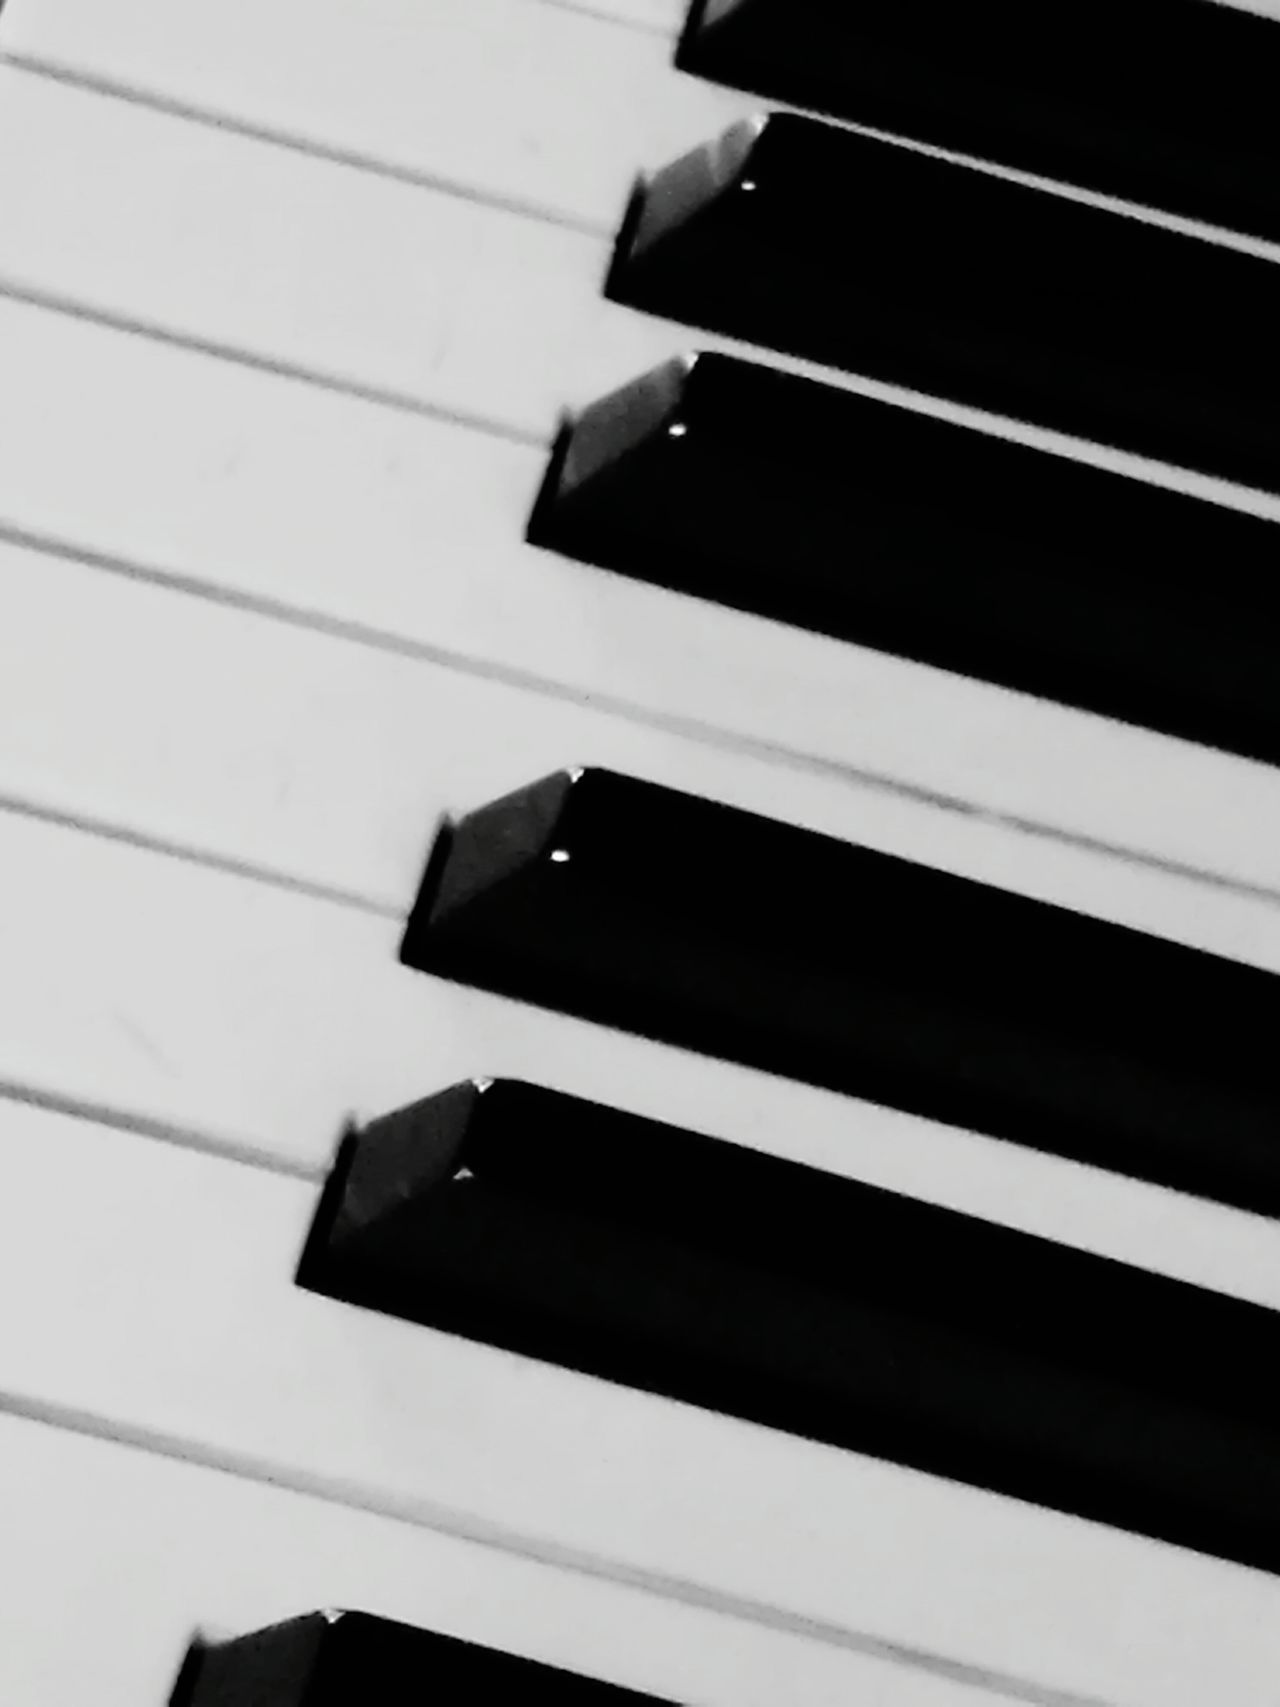 Piano Moments Low Angle View Indoors  Musical Instrument Mypiano Blackandwhite Myphoto